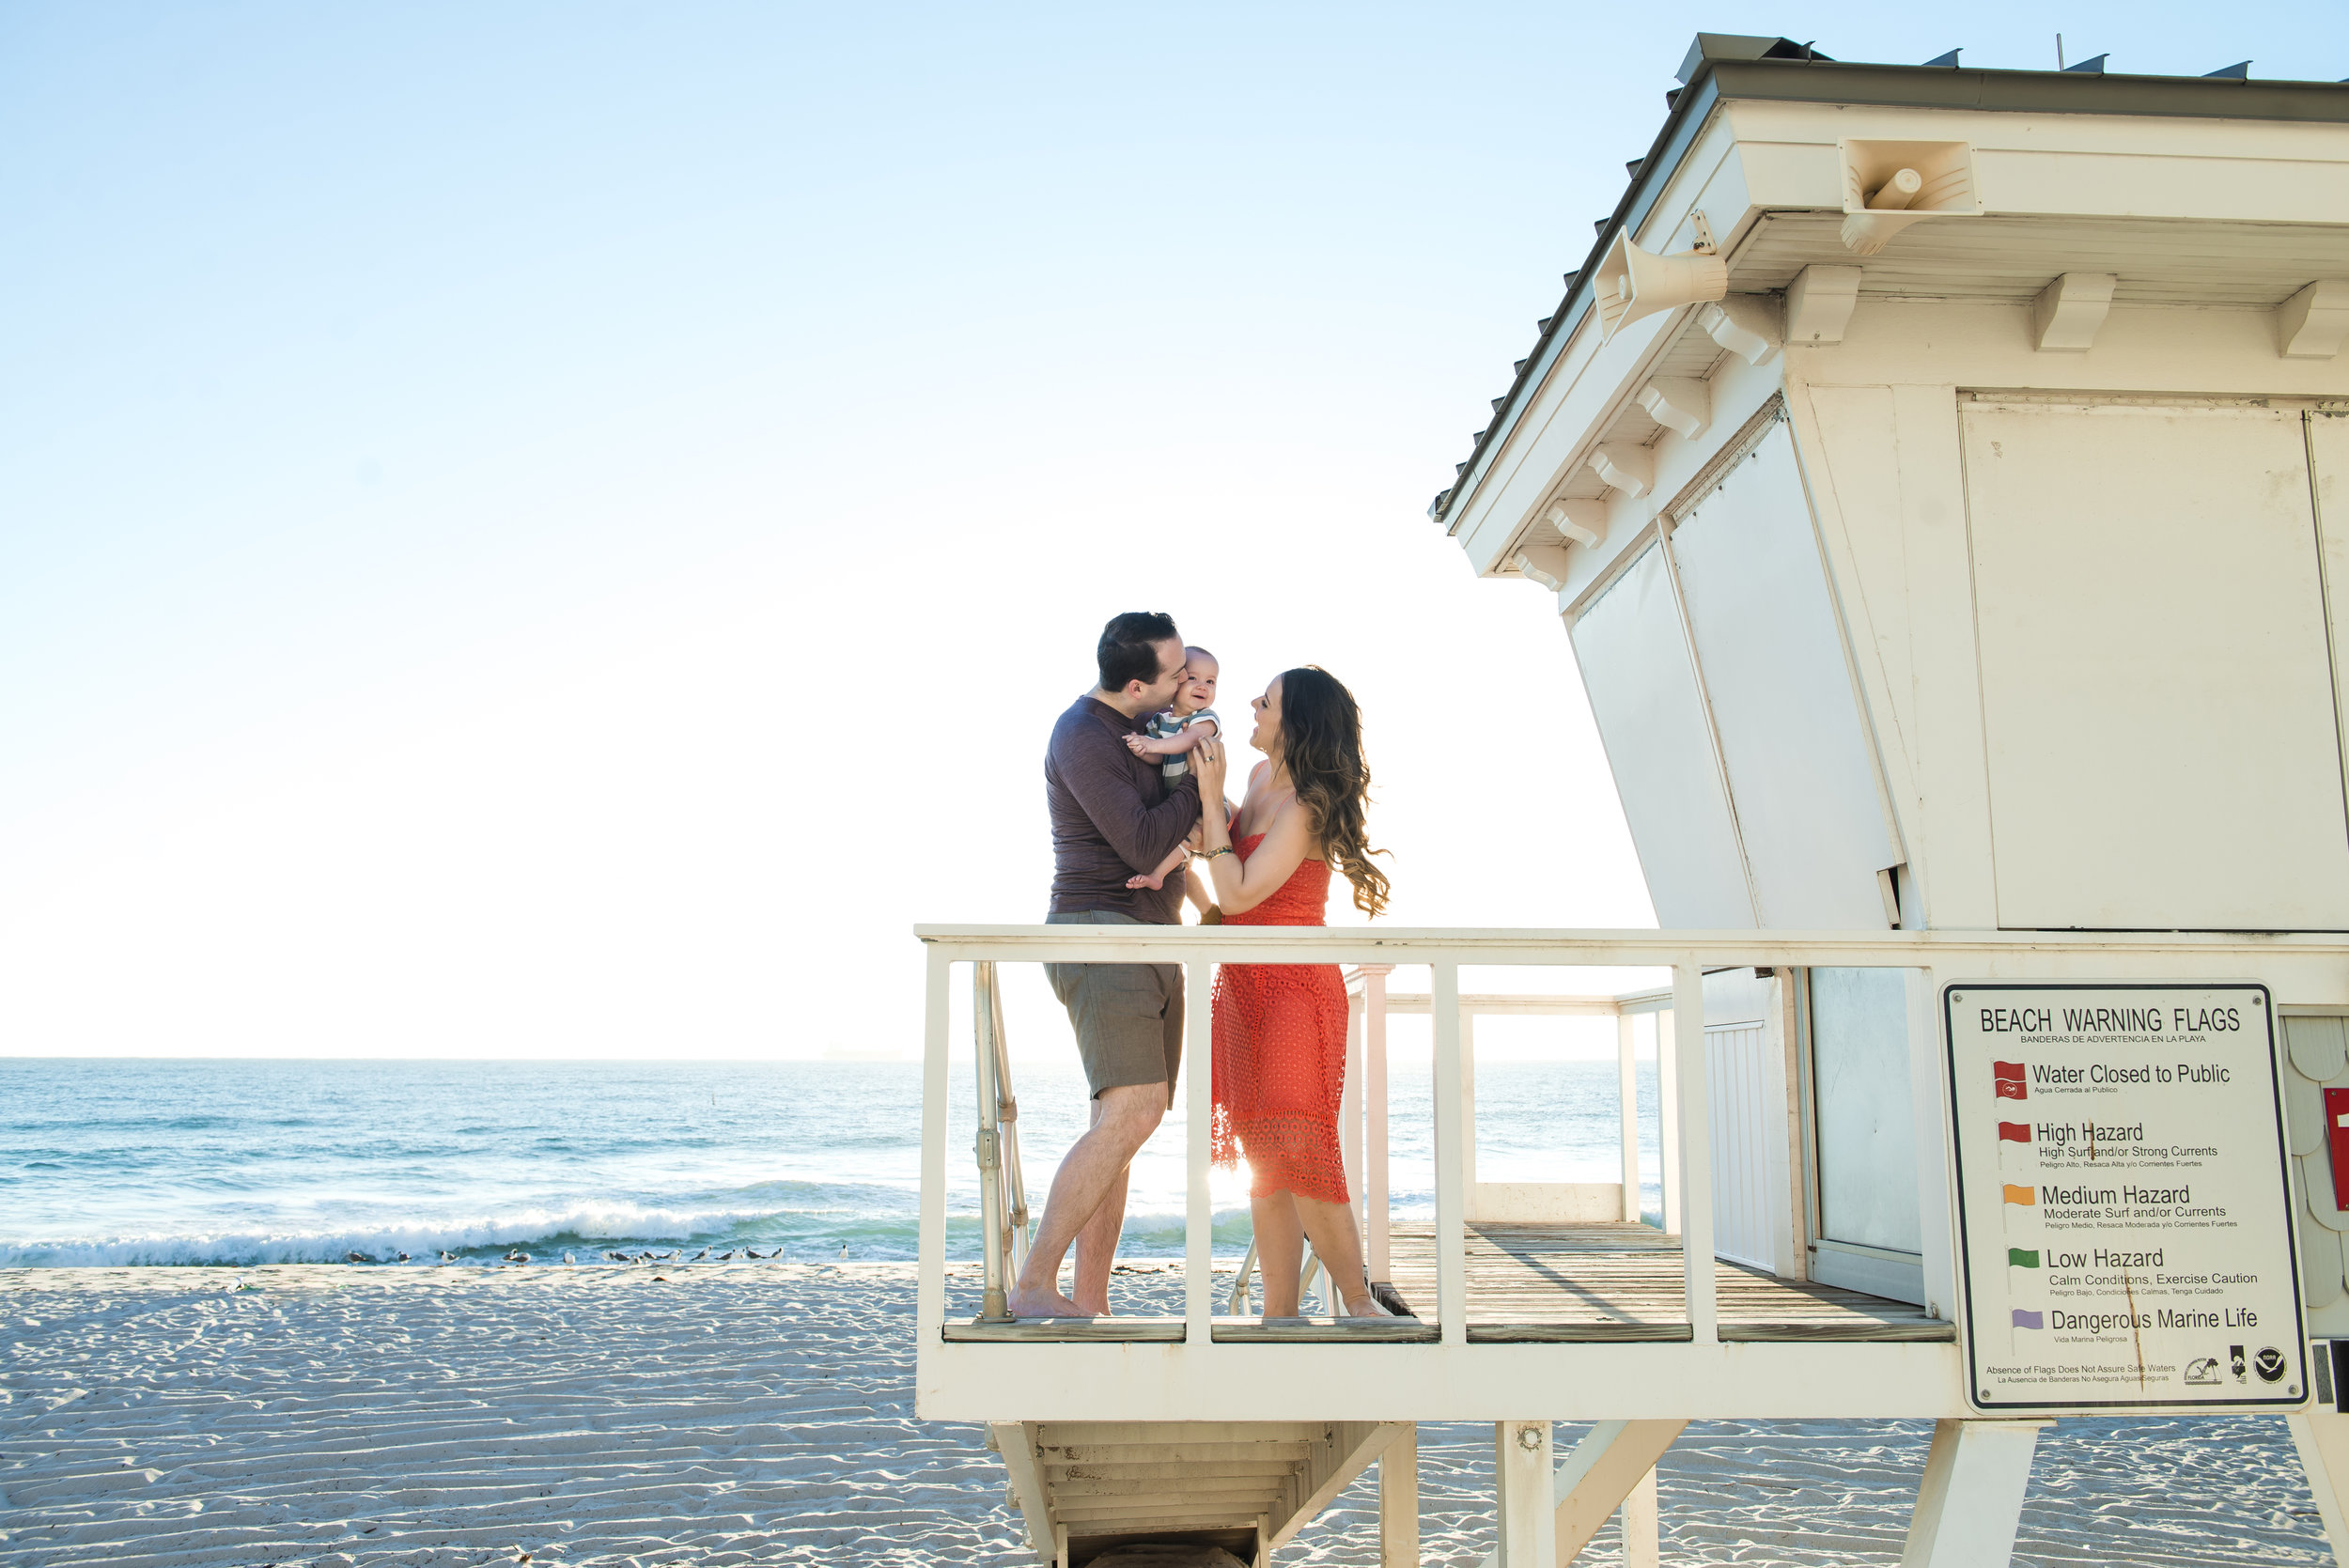 Ft Lauderdale Beach Family Photographer - Lifeguard Stand Family of 3